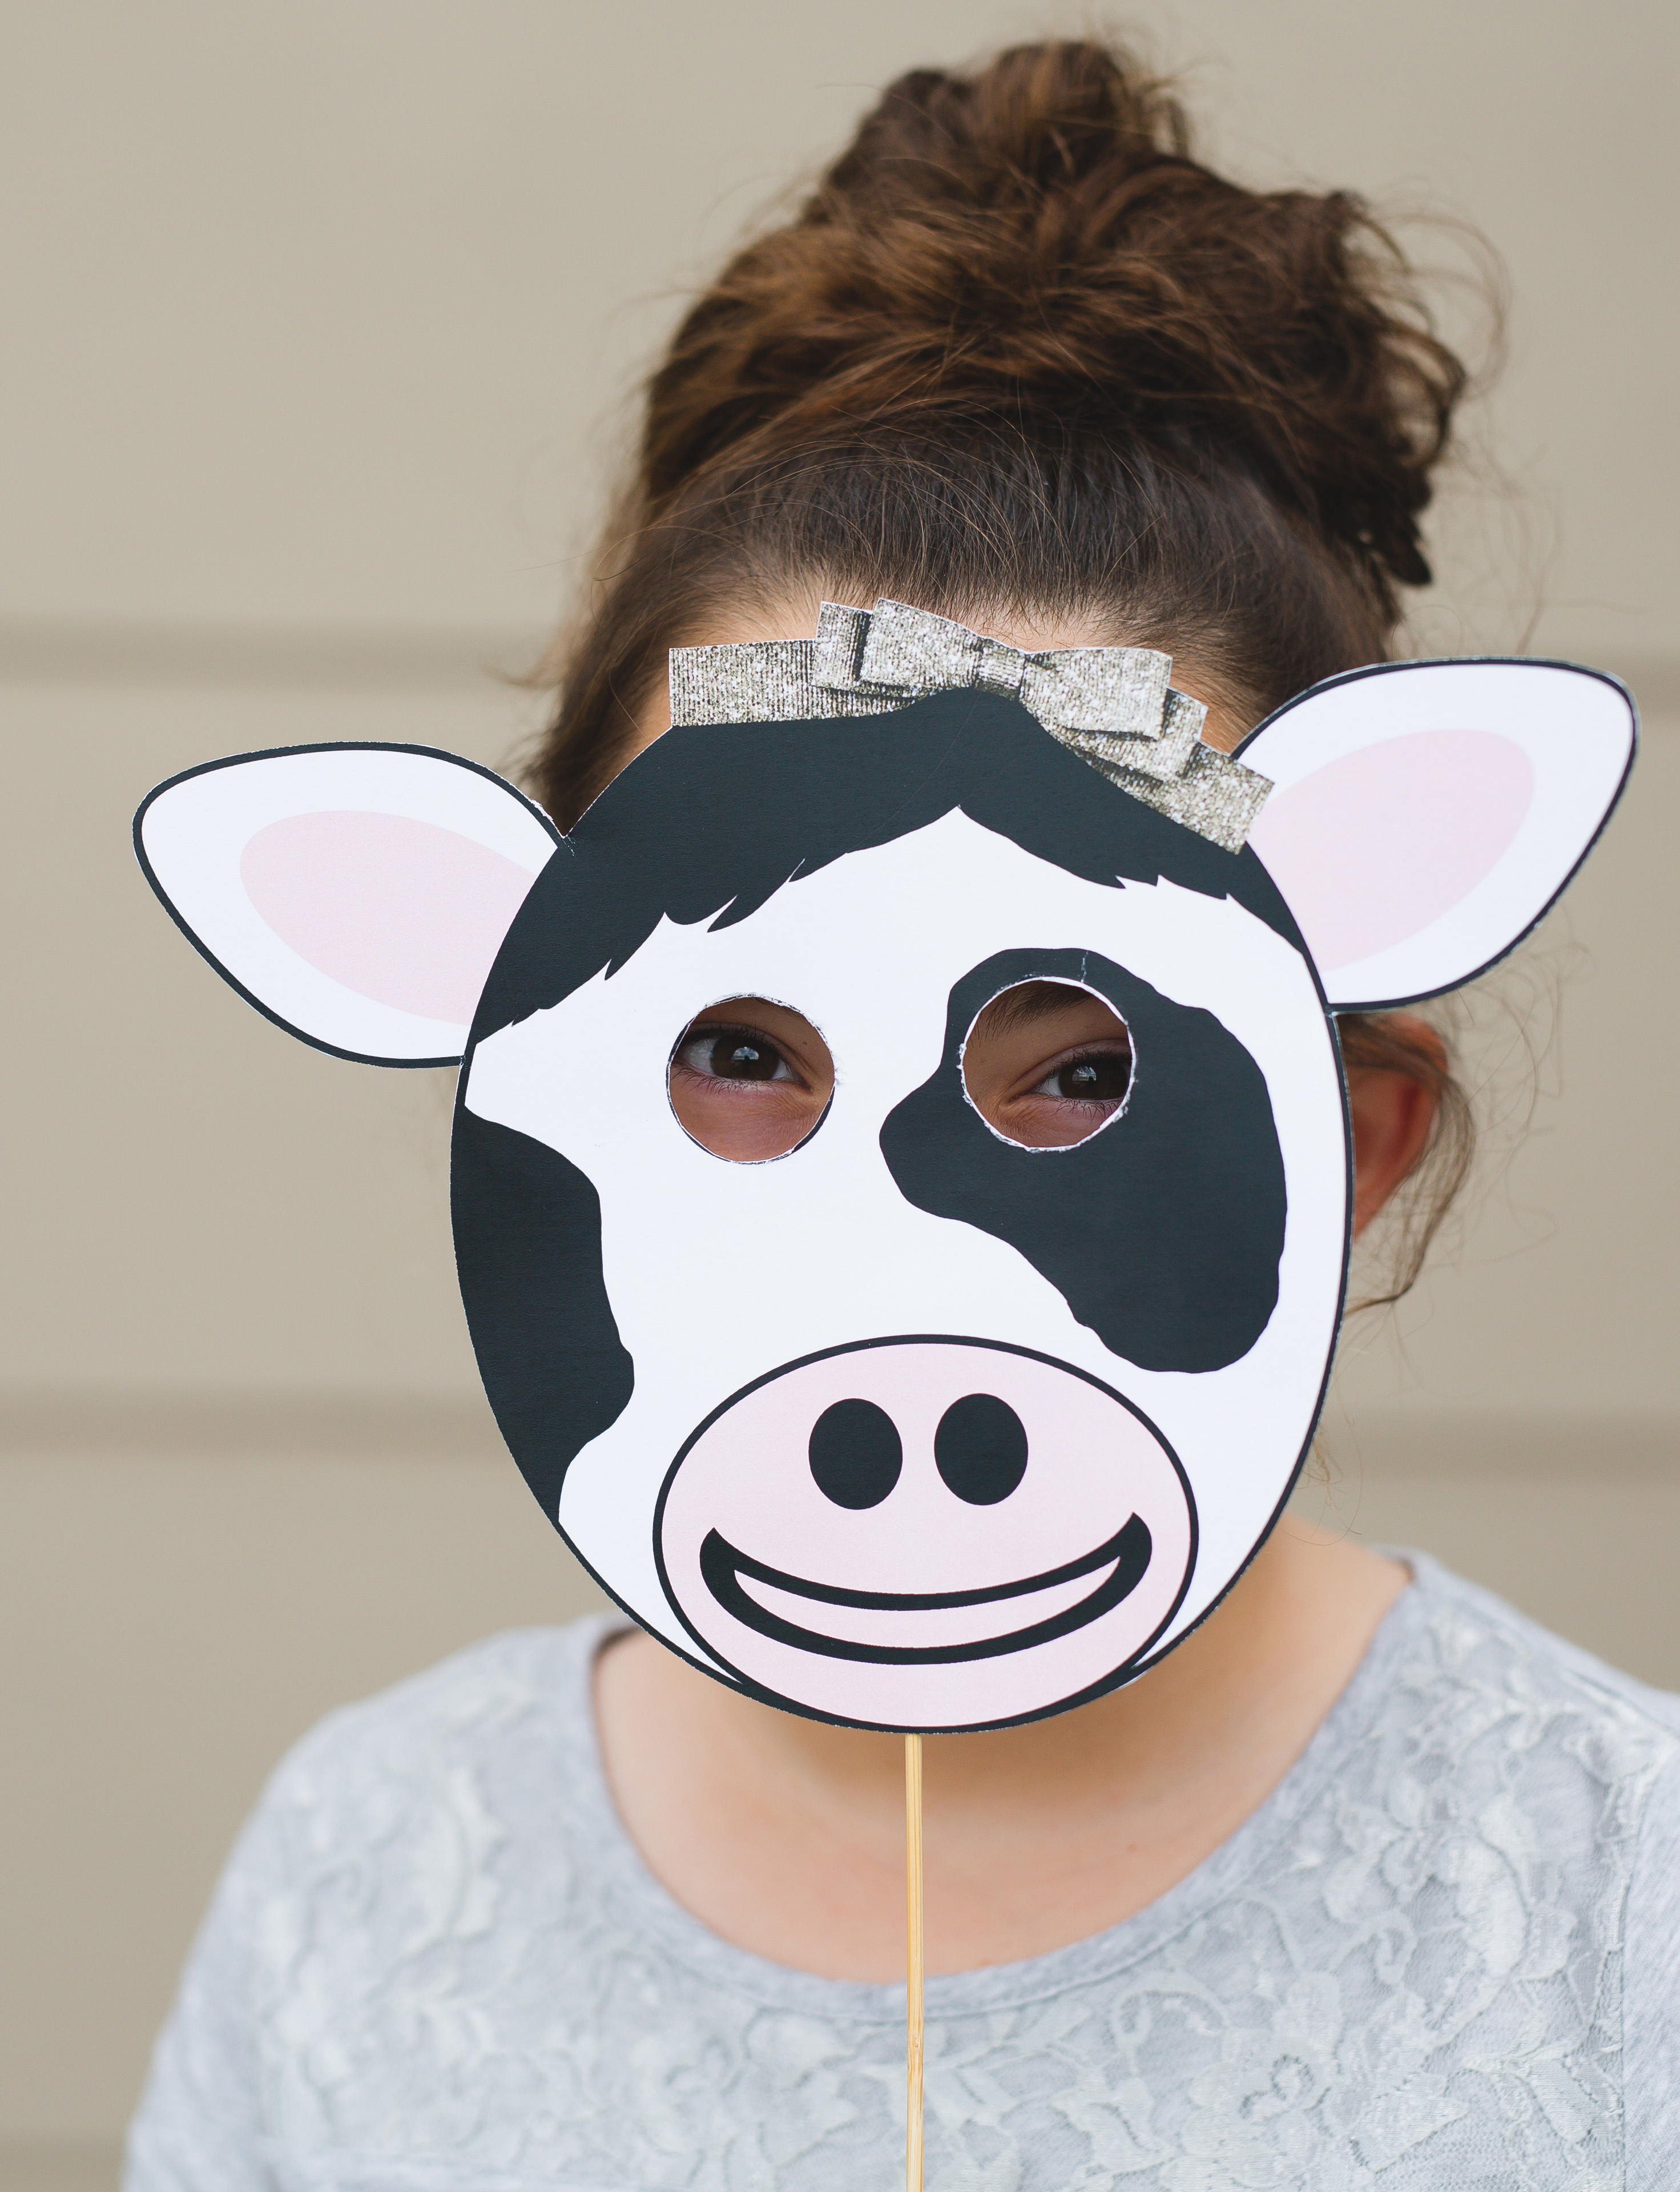 photo relating to Printable Cow Mask named Chick Fil A Cow Mask - 6 Intelligent Sisters